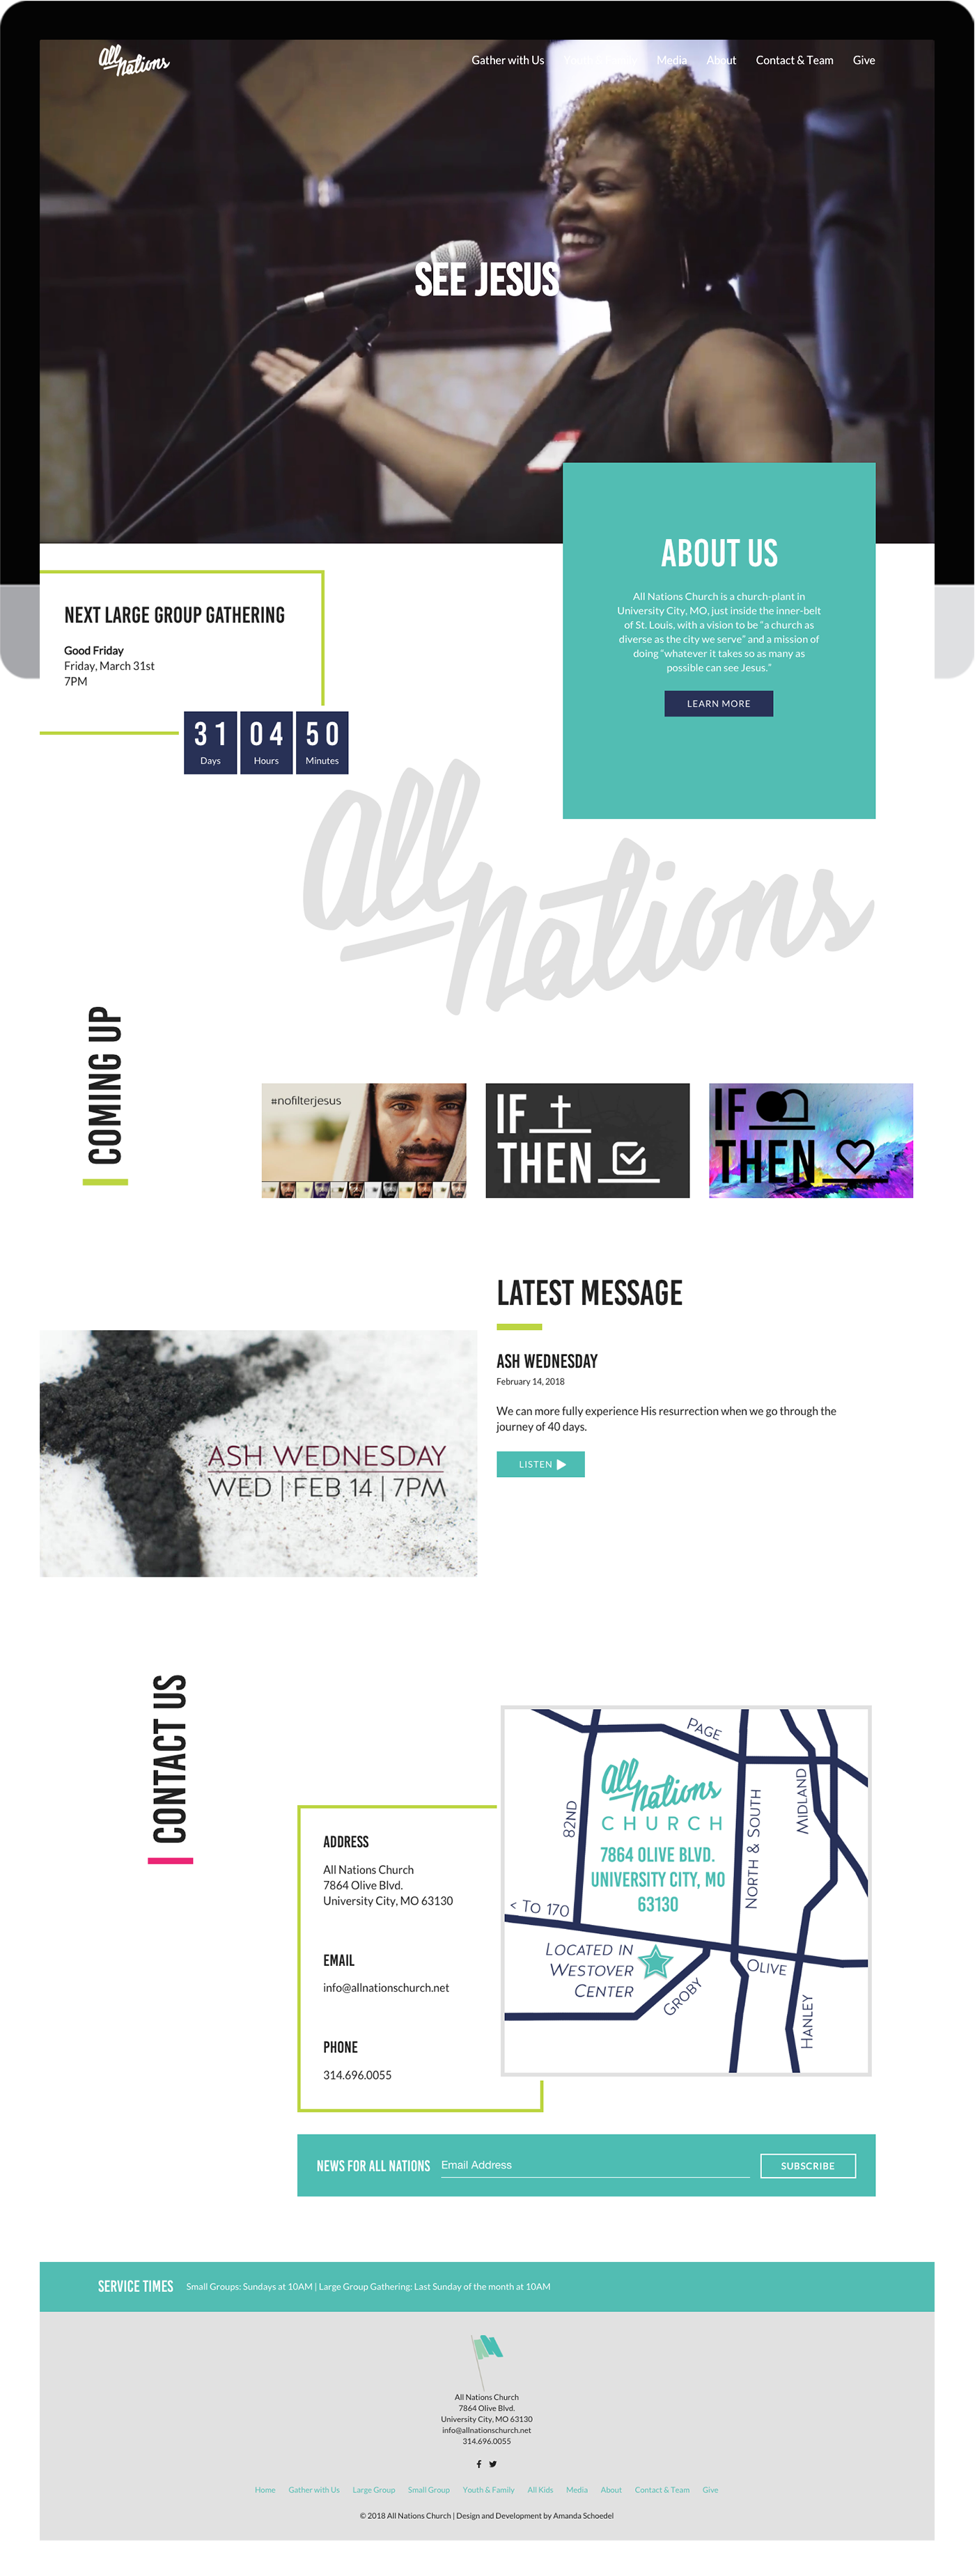 All Nations Church custom WordPress design and development